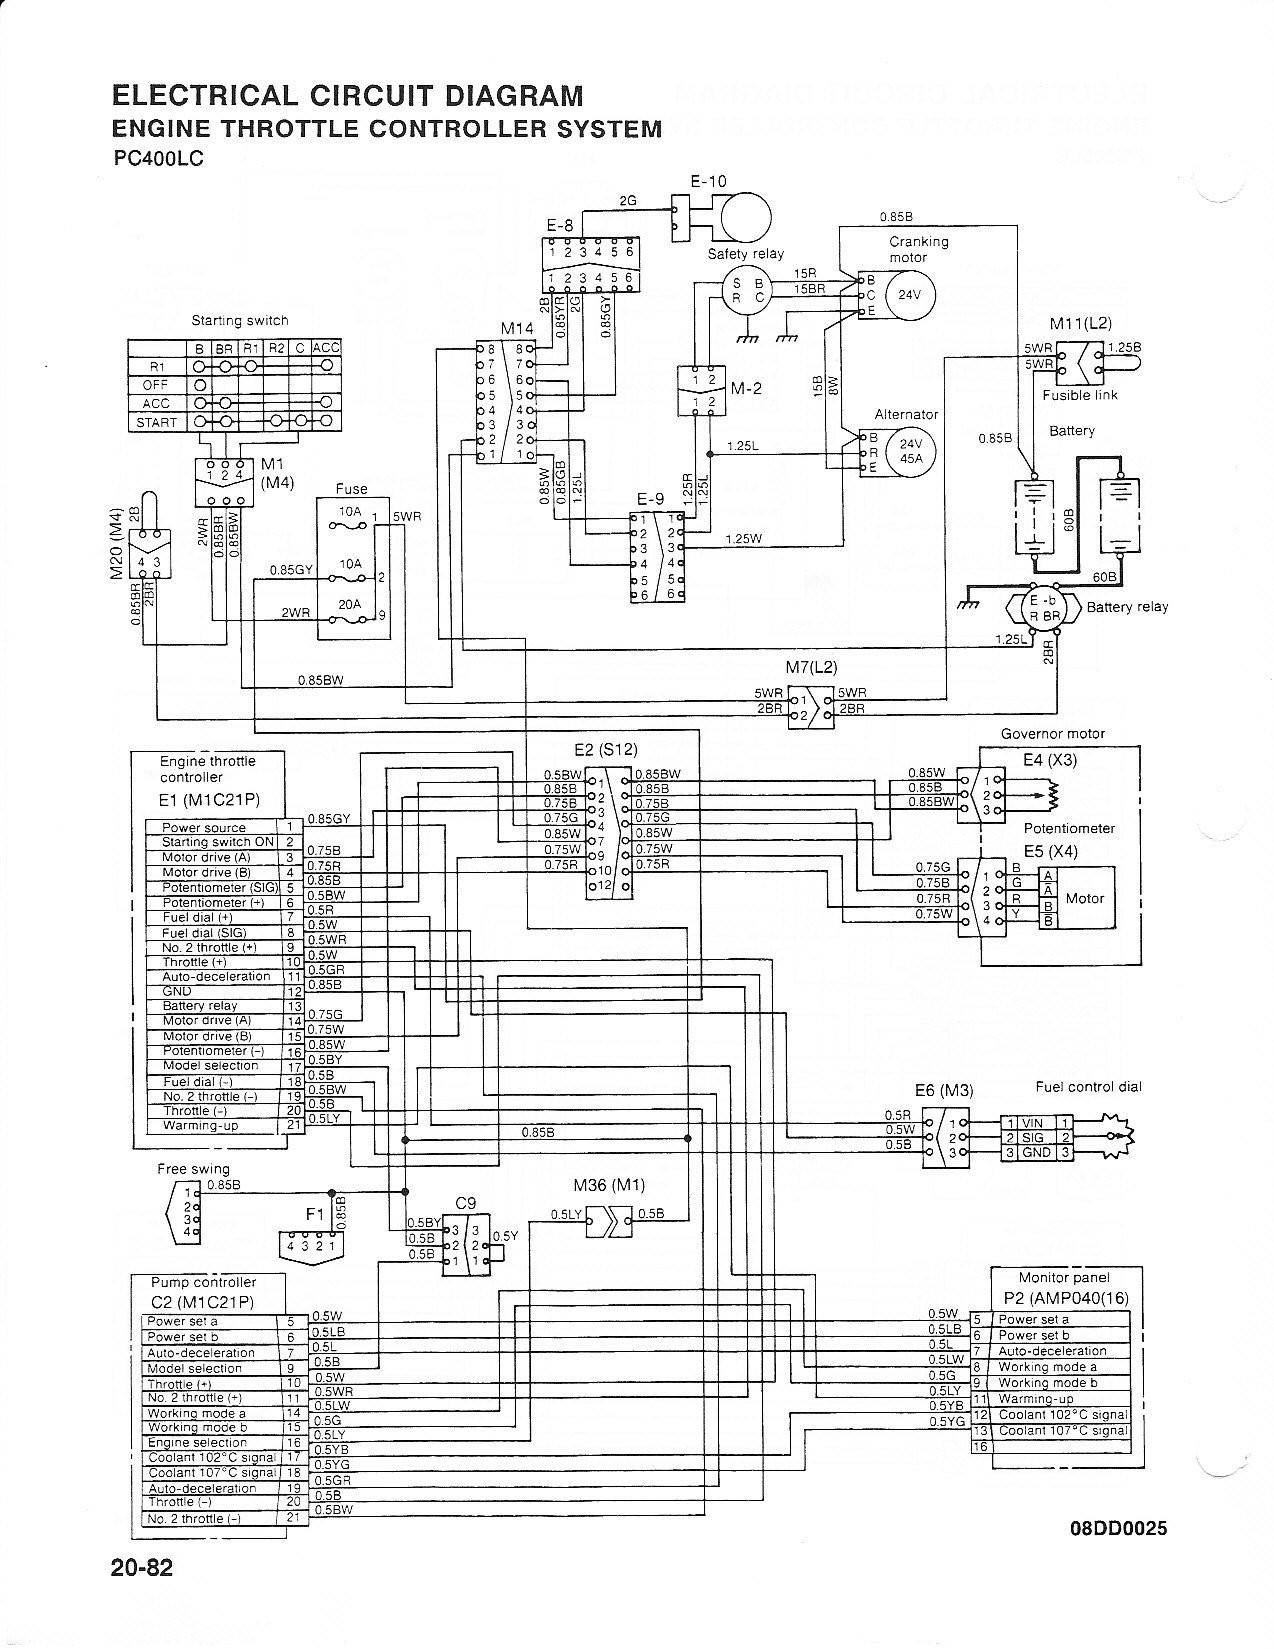 Freightliner Air System Diagram Freightliner M Wiring Diagram Fresh Freightliner M Wiring Diagram Of Freightliner Air System Diagram on 1999 Freightliner Air Manifold Diagrams